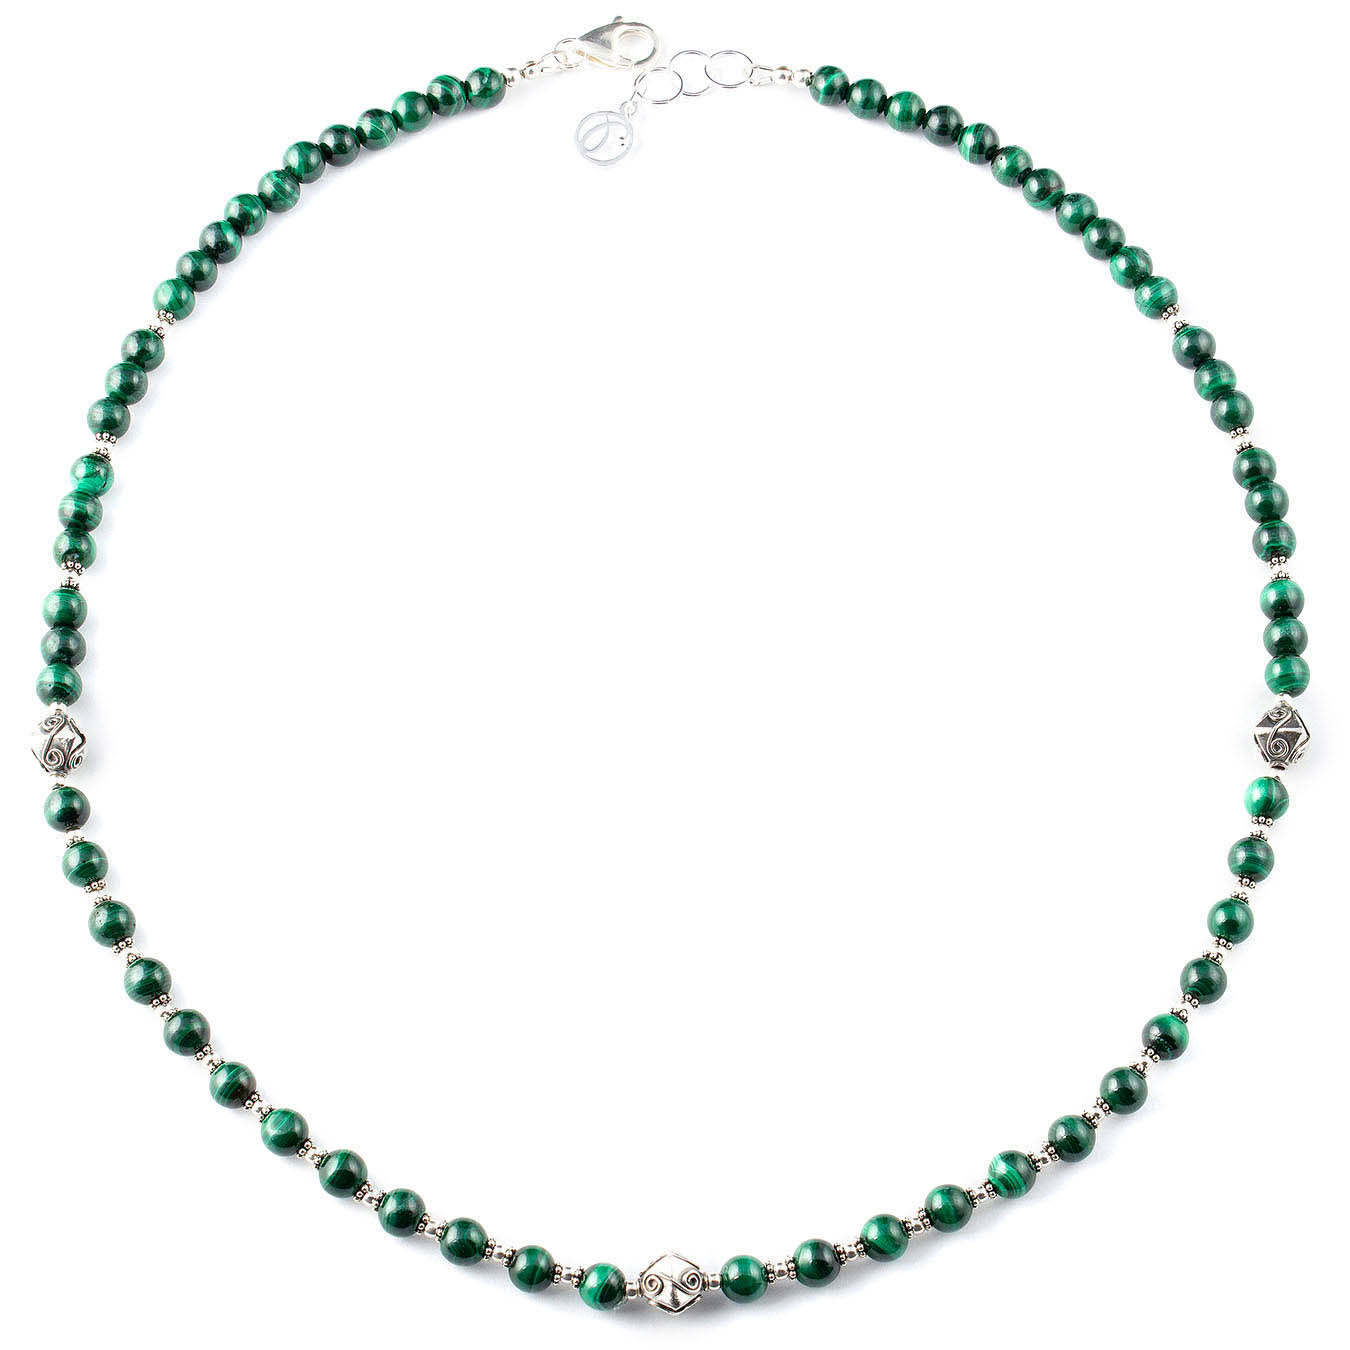 Handcrafted necklace made with green malachite stones and bali silver